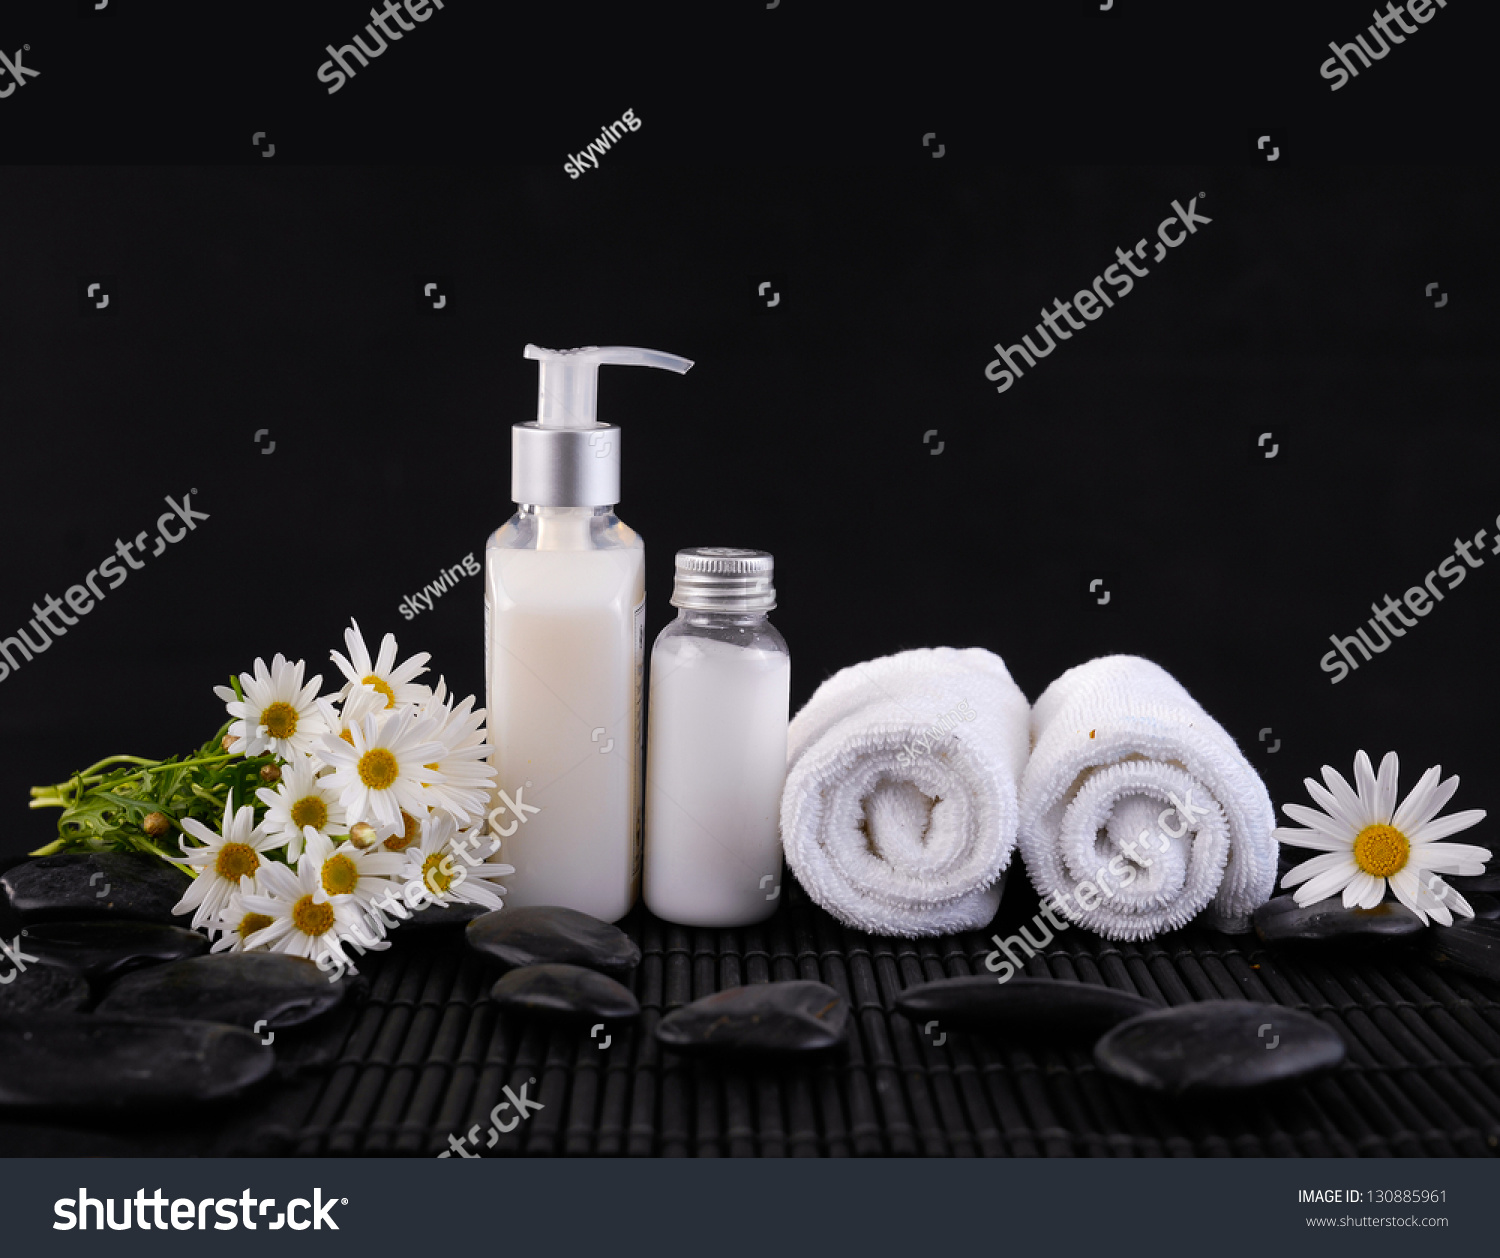 Spa Feeling With Branch White Flower Roller Towel Pebbles Oil